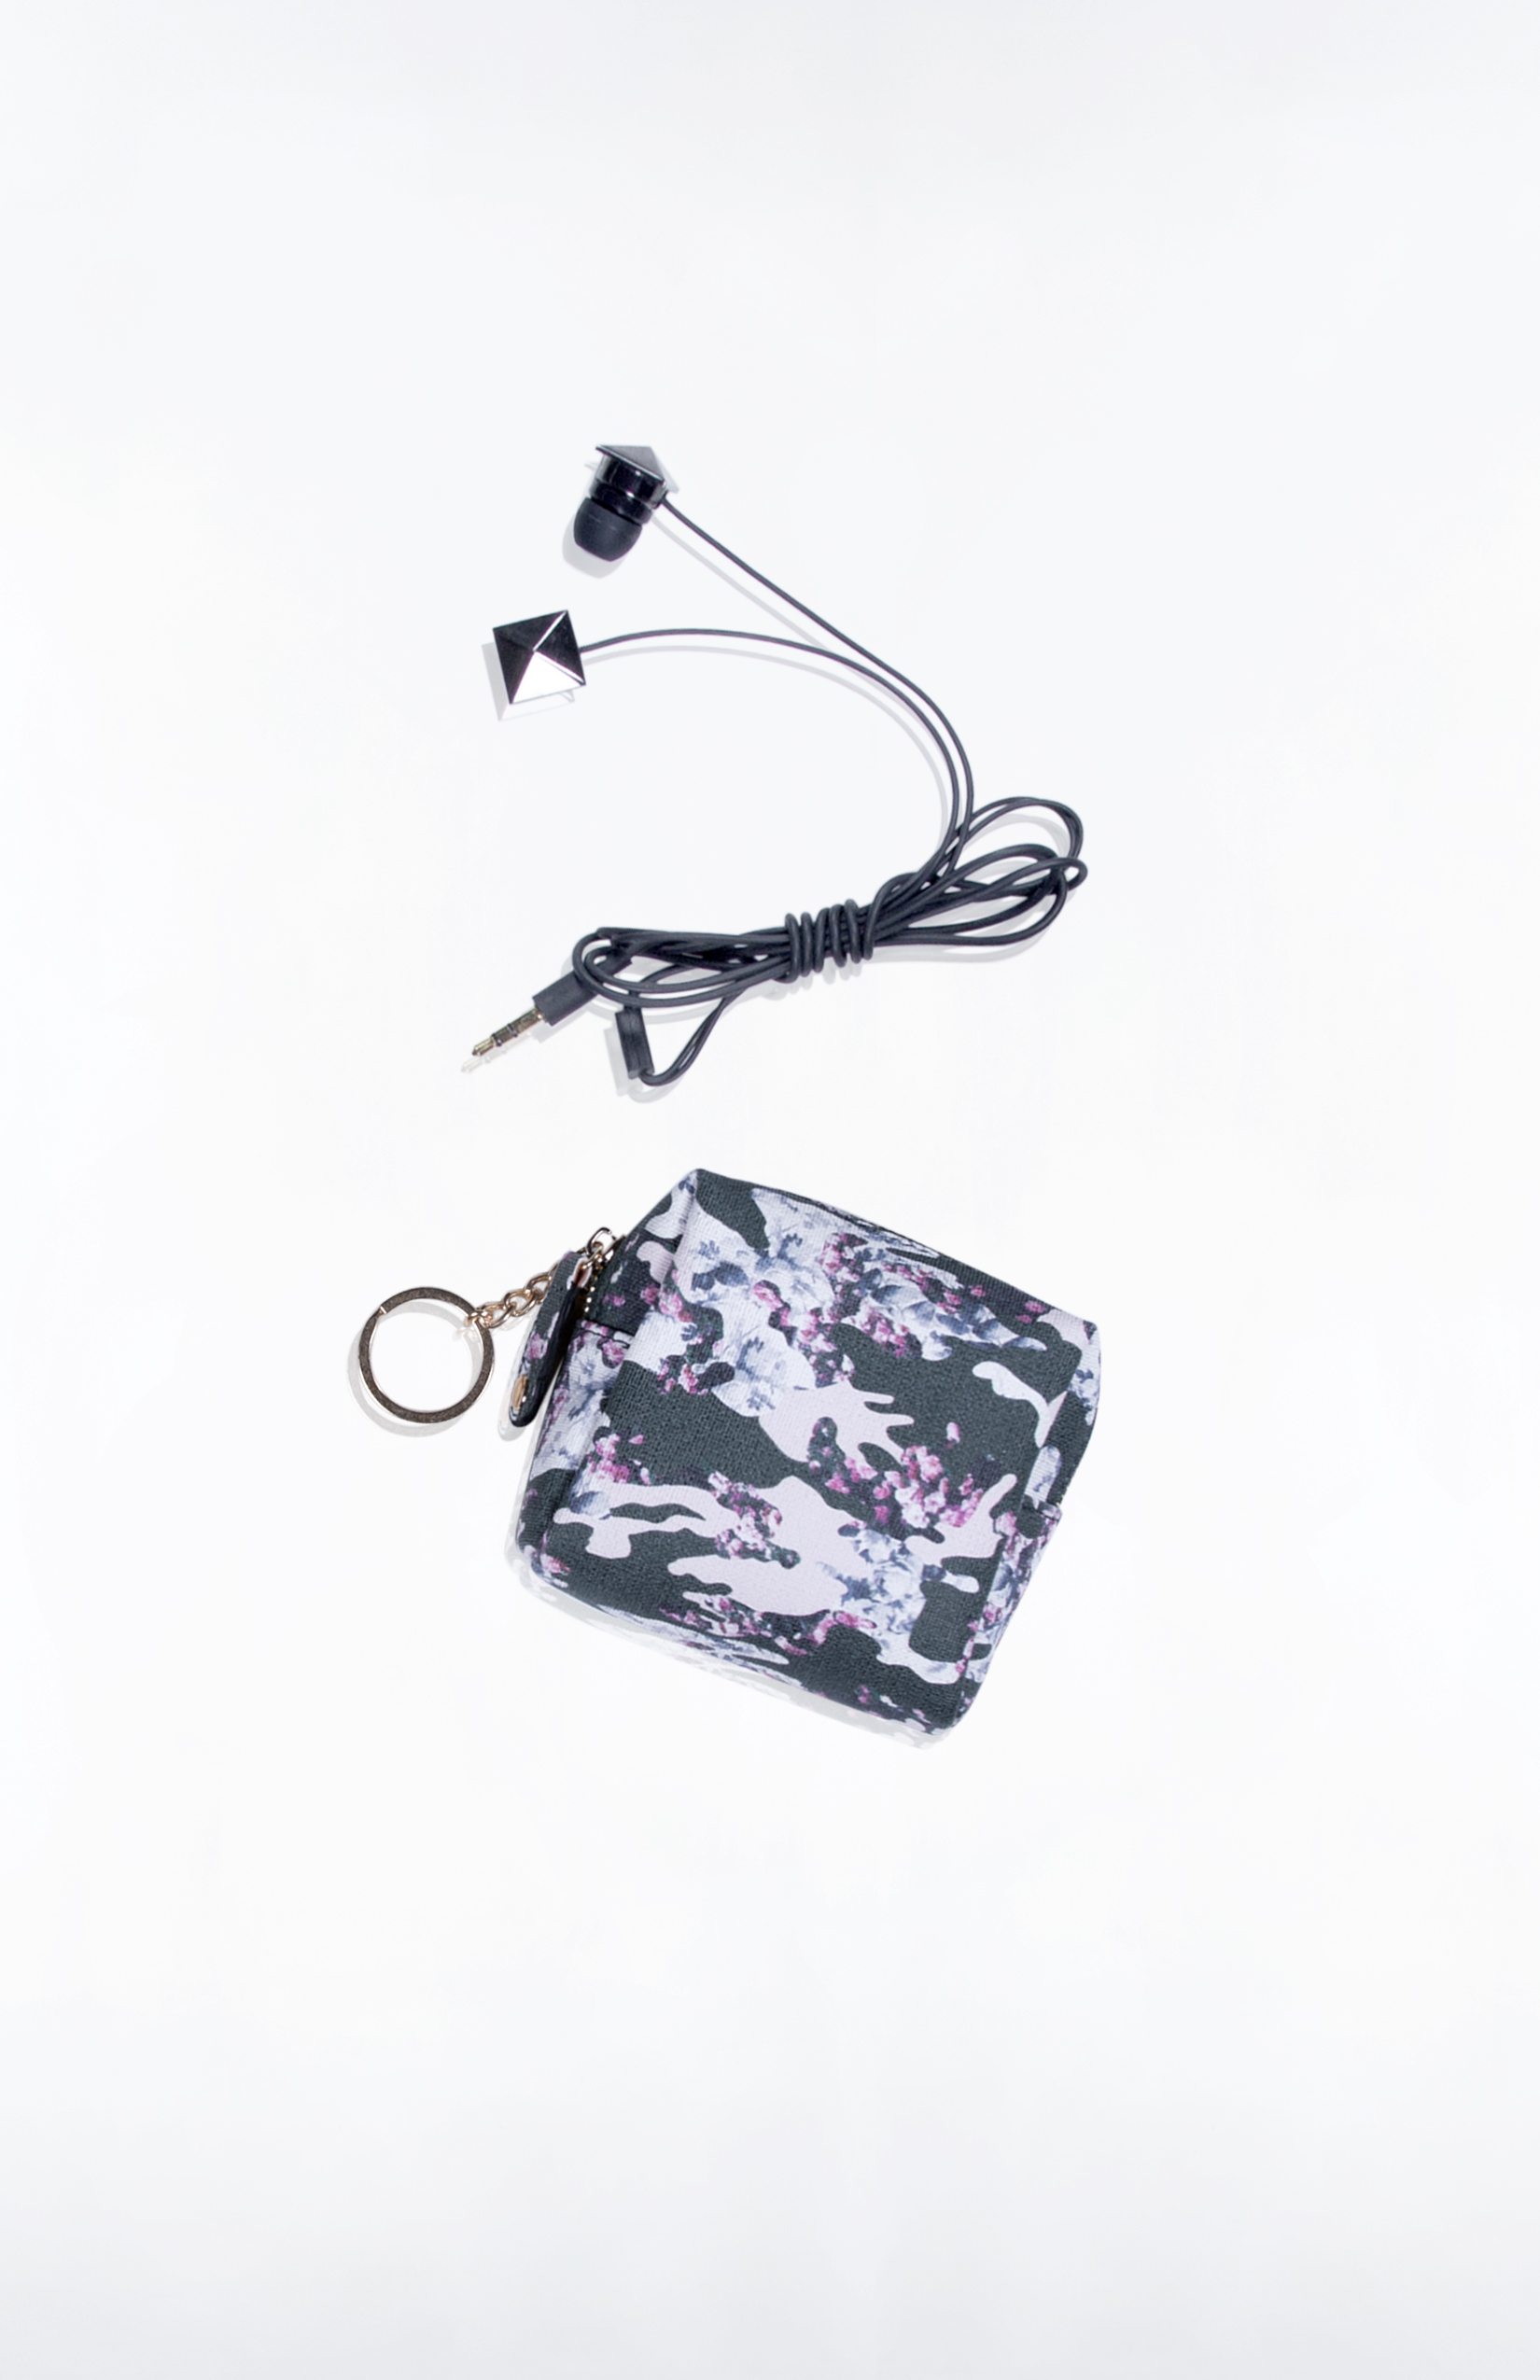 ROE EARBUD/KEY POUCH- Custom Printed Saffiano (Floral Camo)